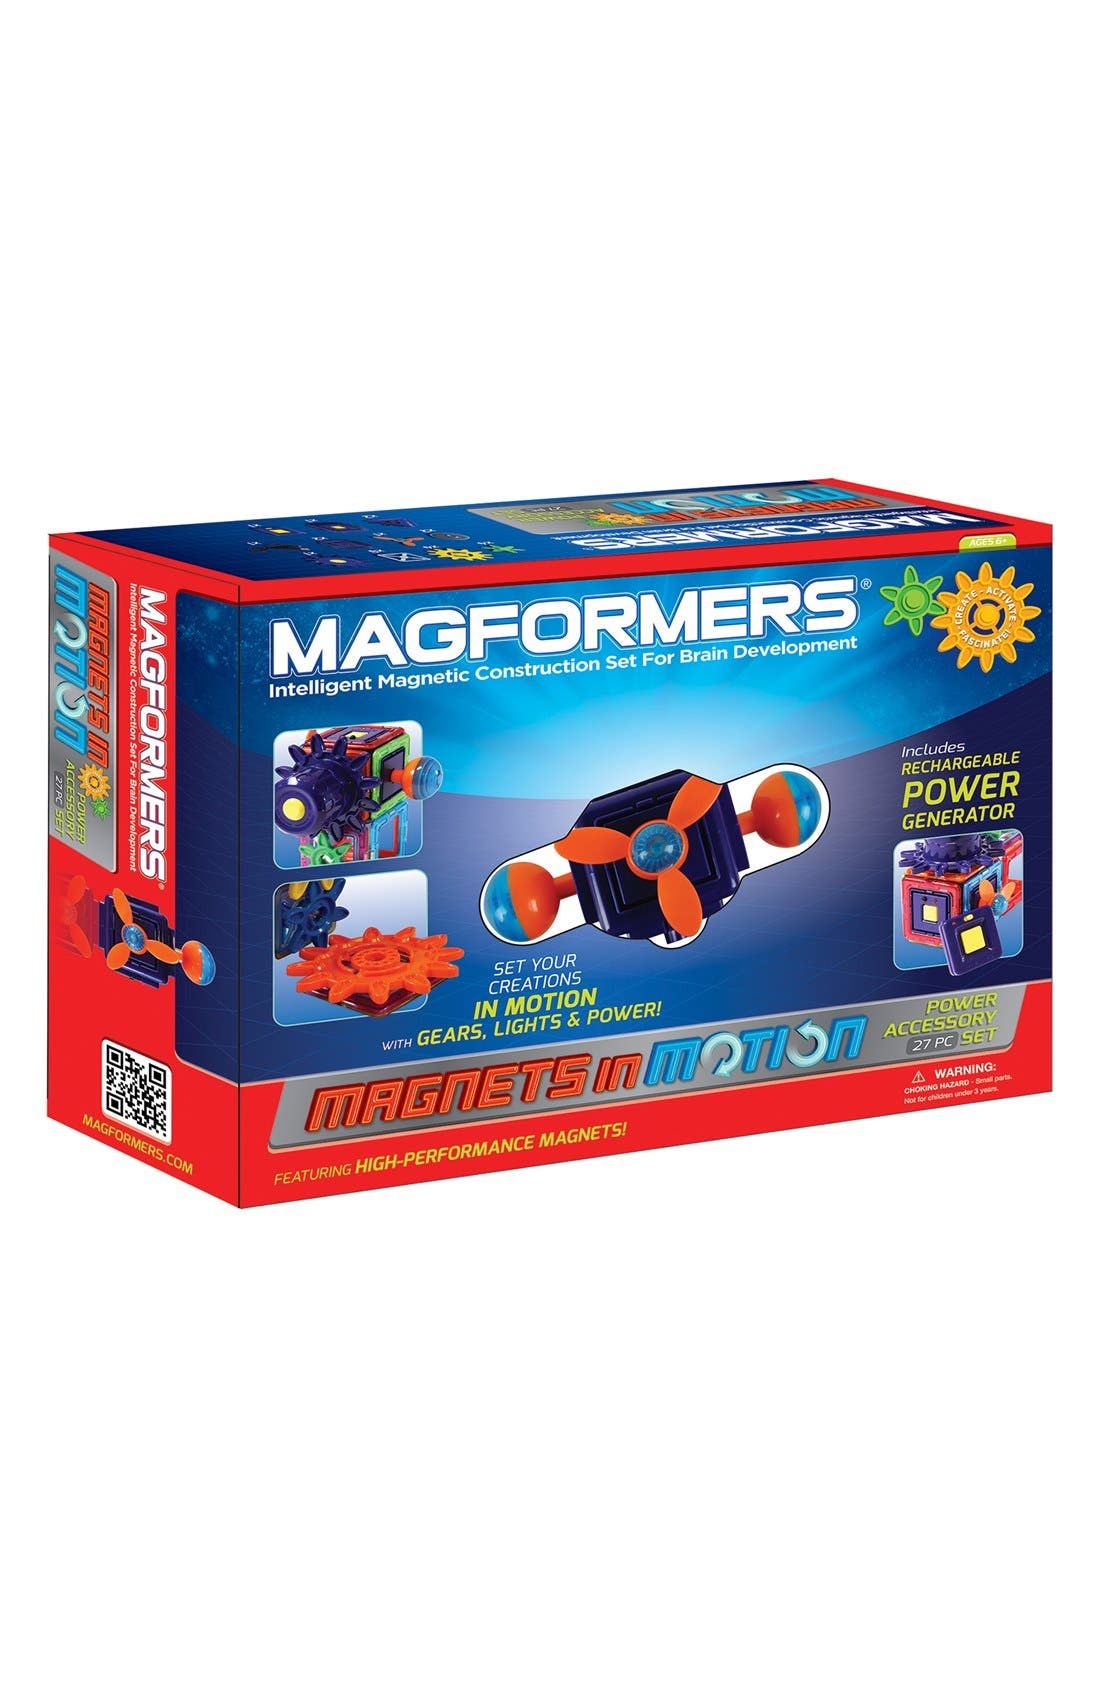 MAGFORMERS 'Magnets in Motion' Construction Set